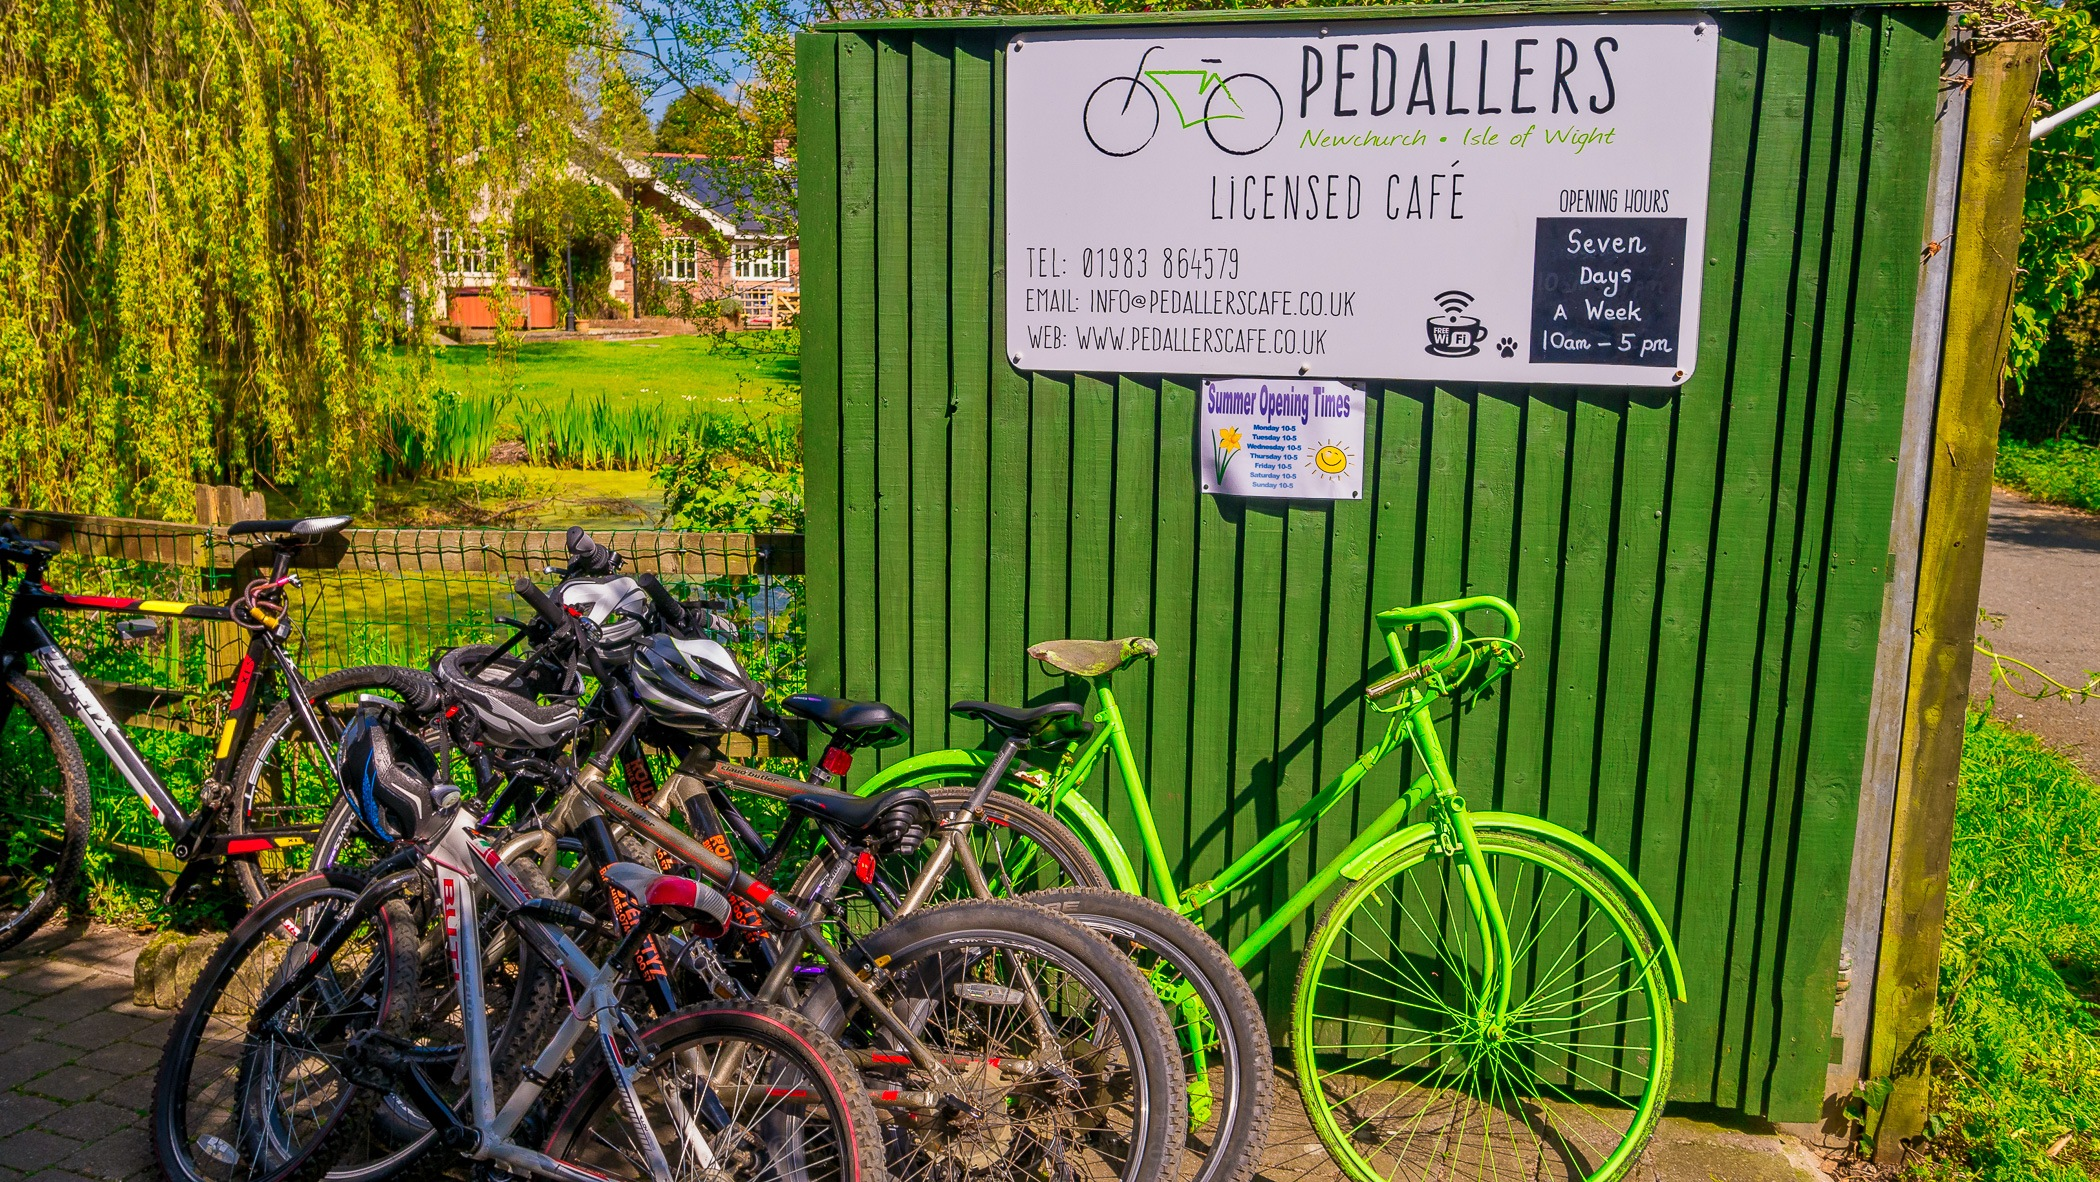 Stopping at the Pedallers Cafe